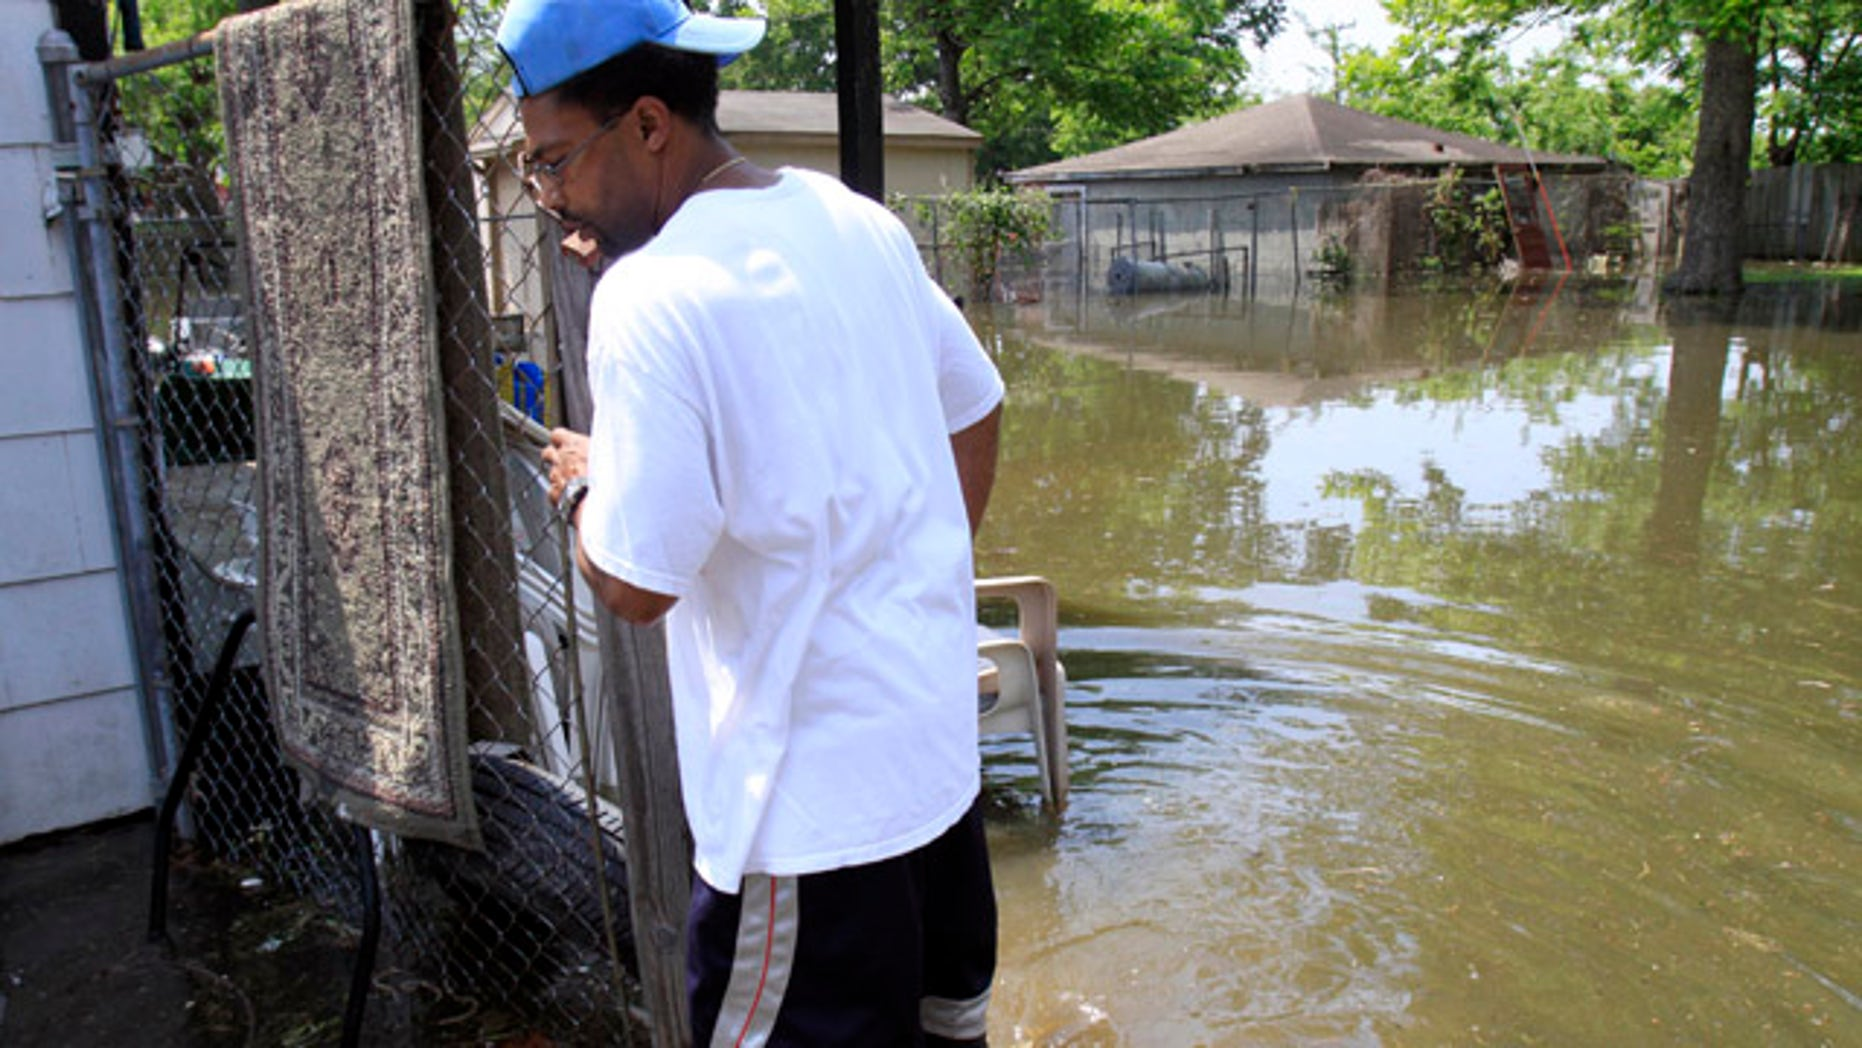 May 8: Gary Dugger walks in his flooded backyard in Memphis, Tenn. Dugger was hoping to wait out the flood in his home but rising water has forced him to flee for higher ground as the mighty Mississippi River edged toward the city, threatening to bring more flooding to parts of an area already soaked.